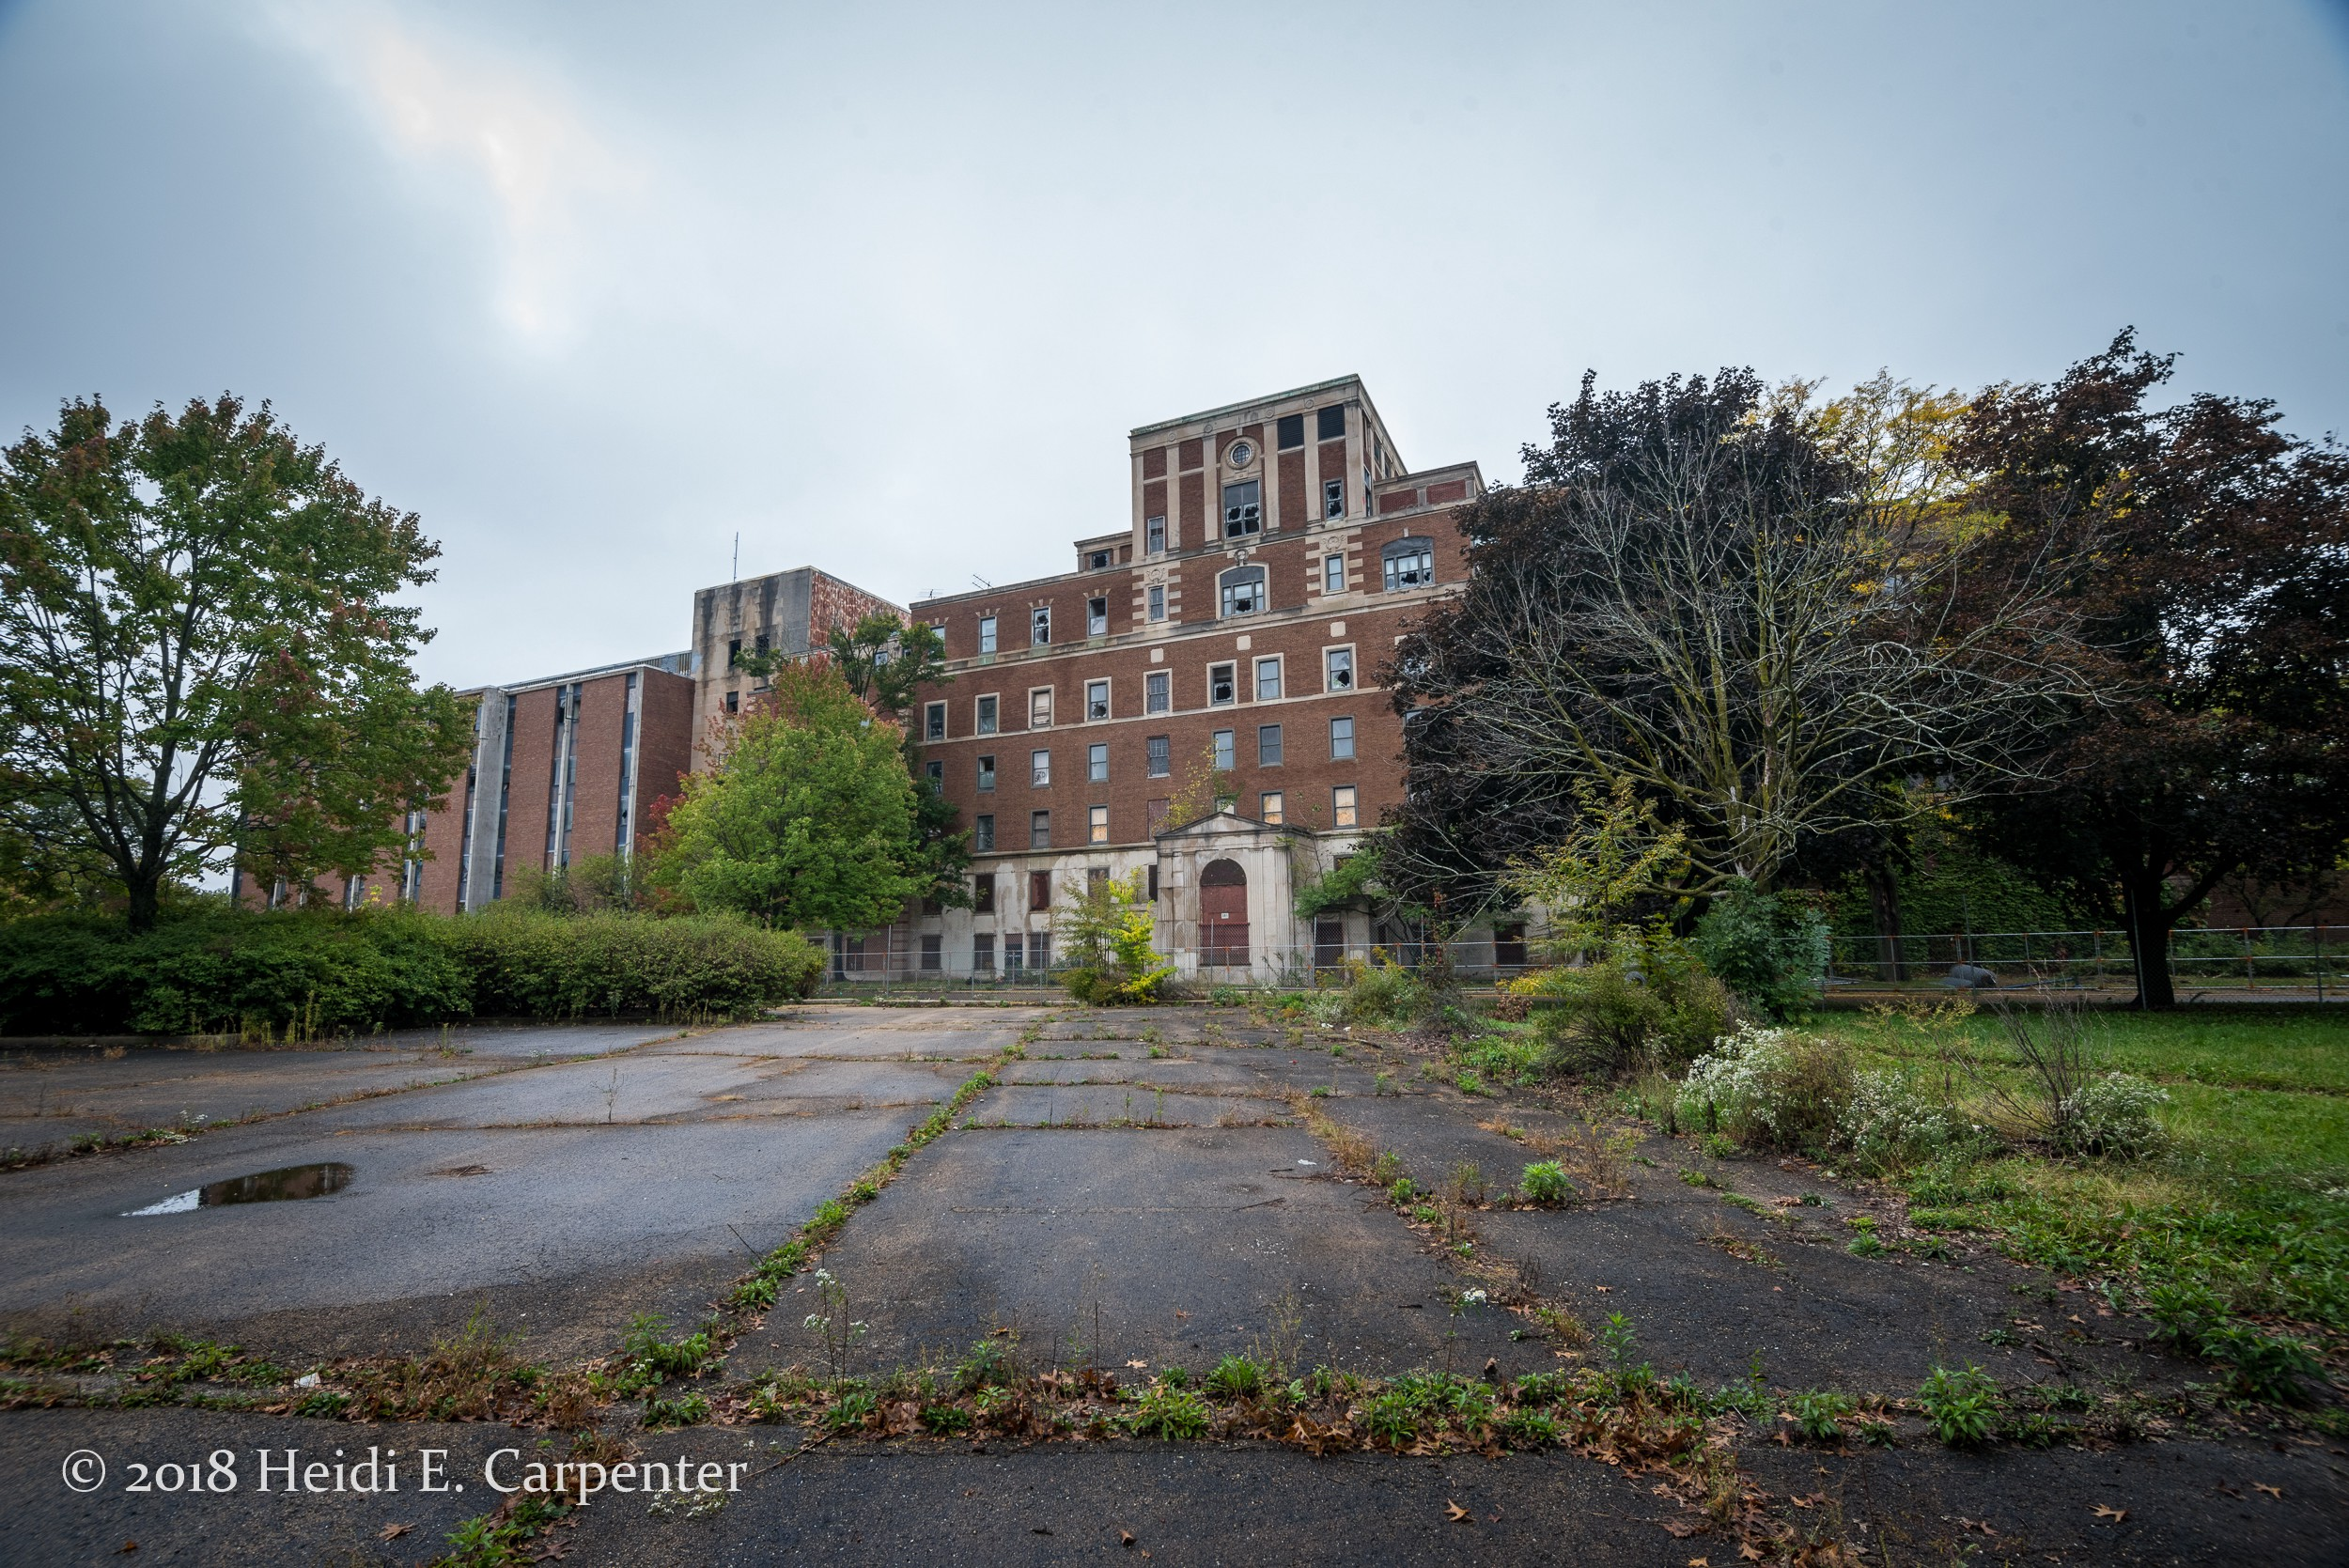 Old Copley Hospital has been abandoned since 1995.